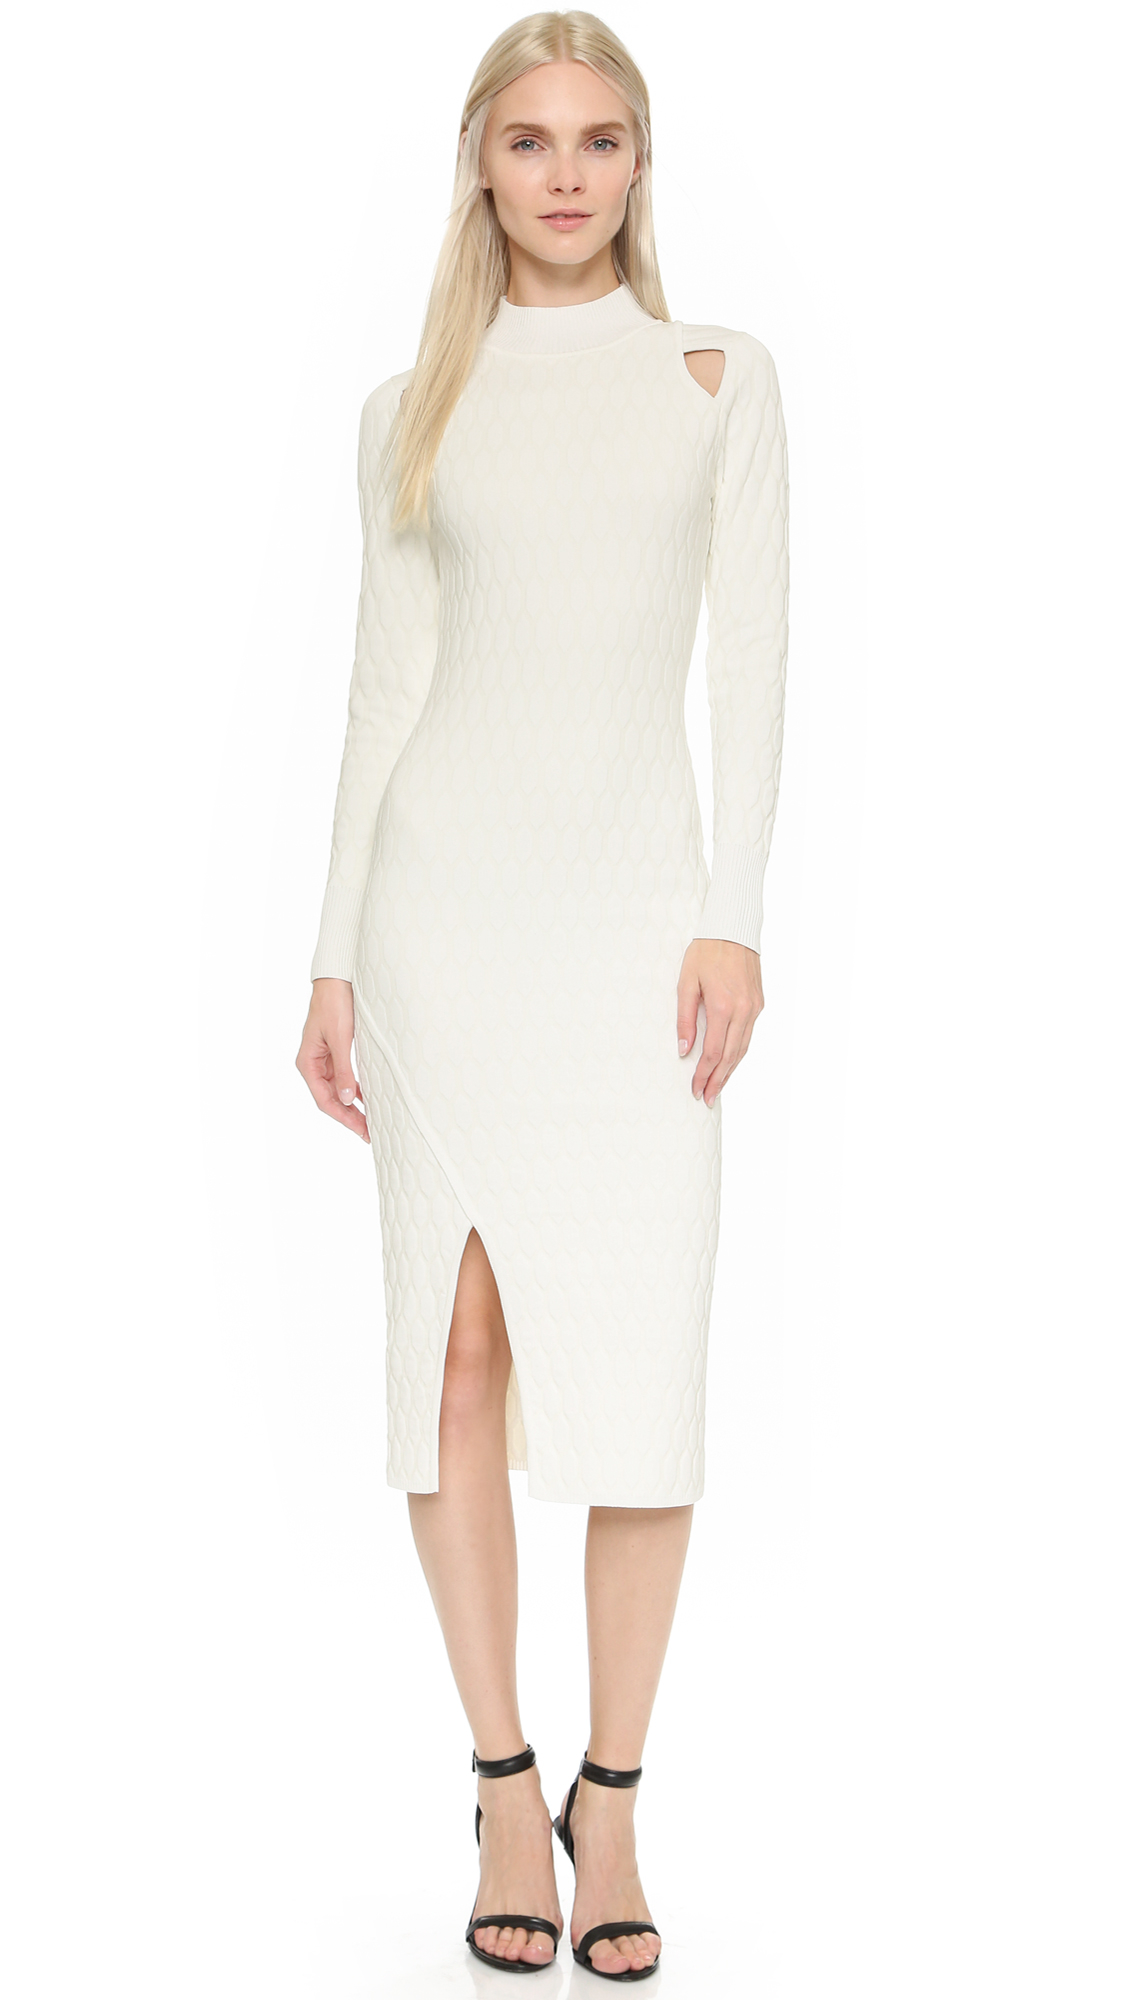 Jonathan simkhai Turtleneck Dress - Ivory in White | Lyst